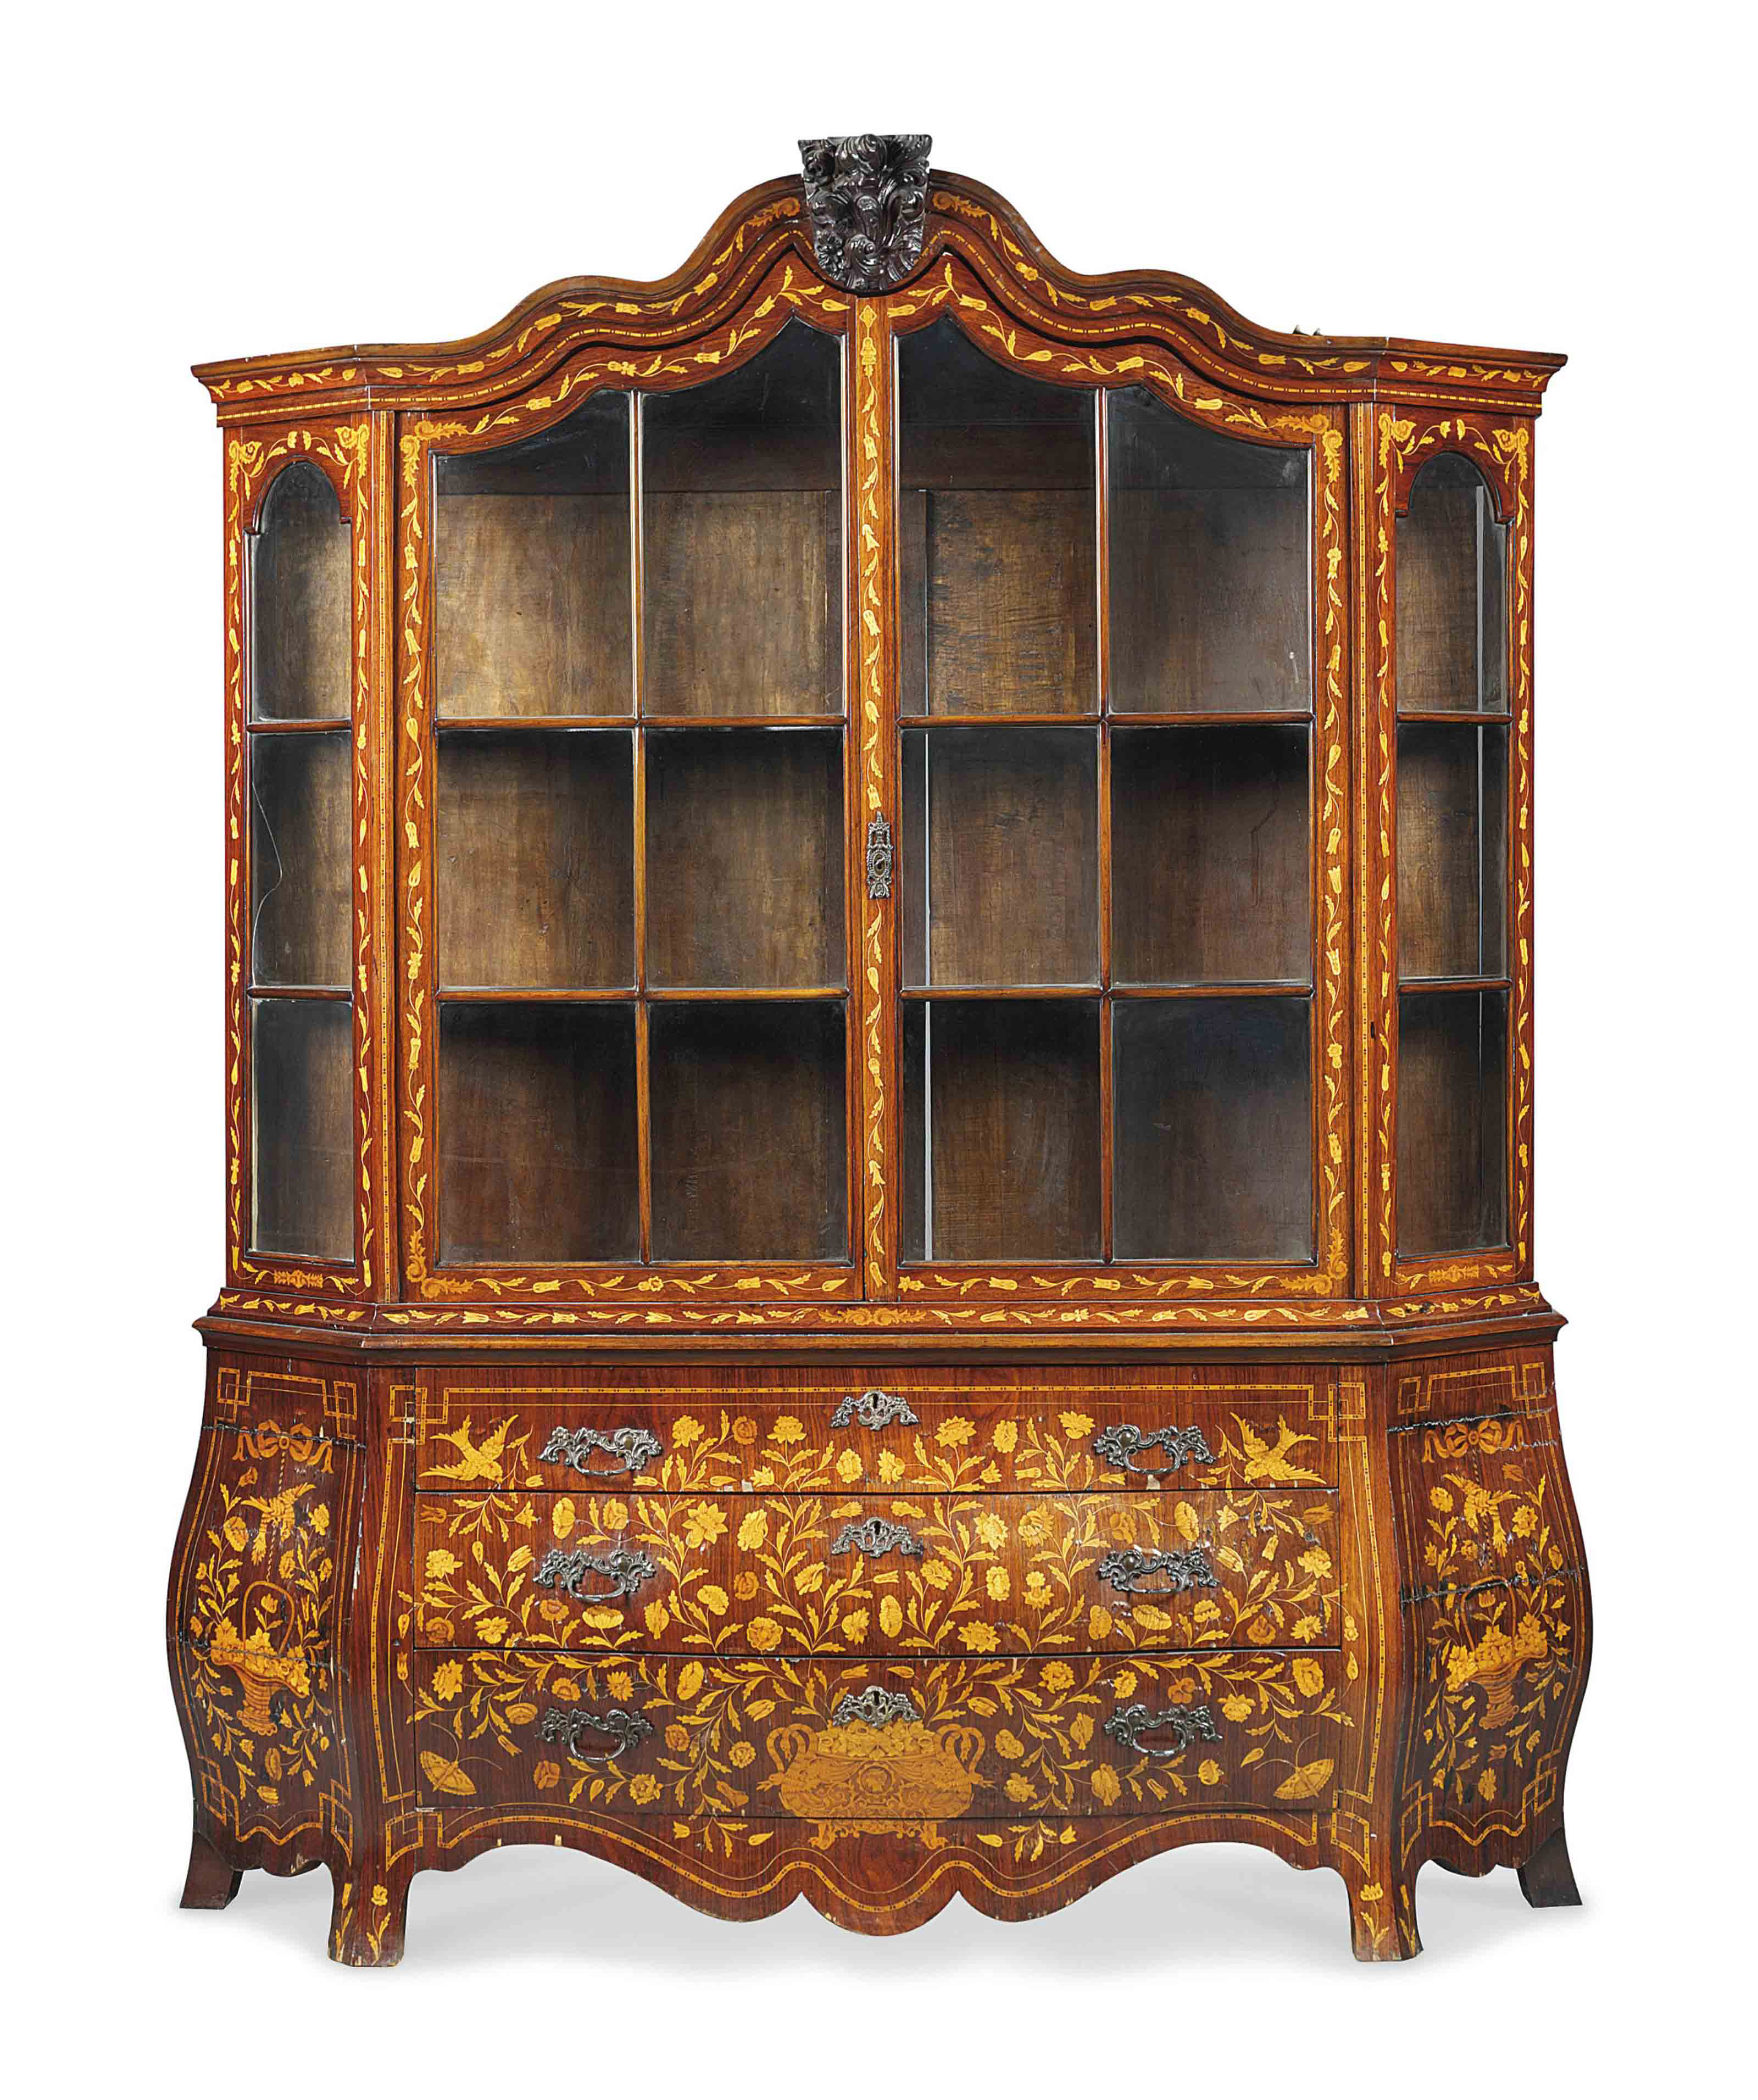 A DUTCH KINGWOOD AND MARQUETRY